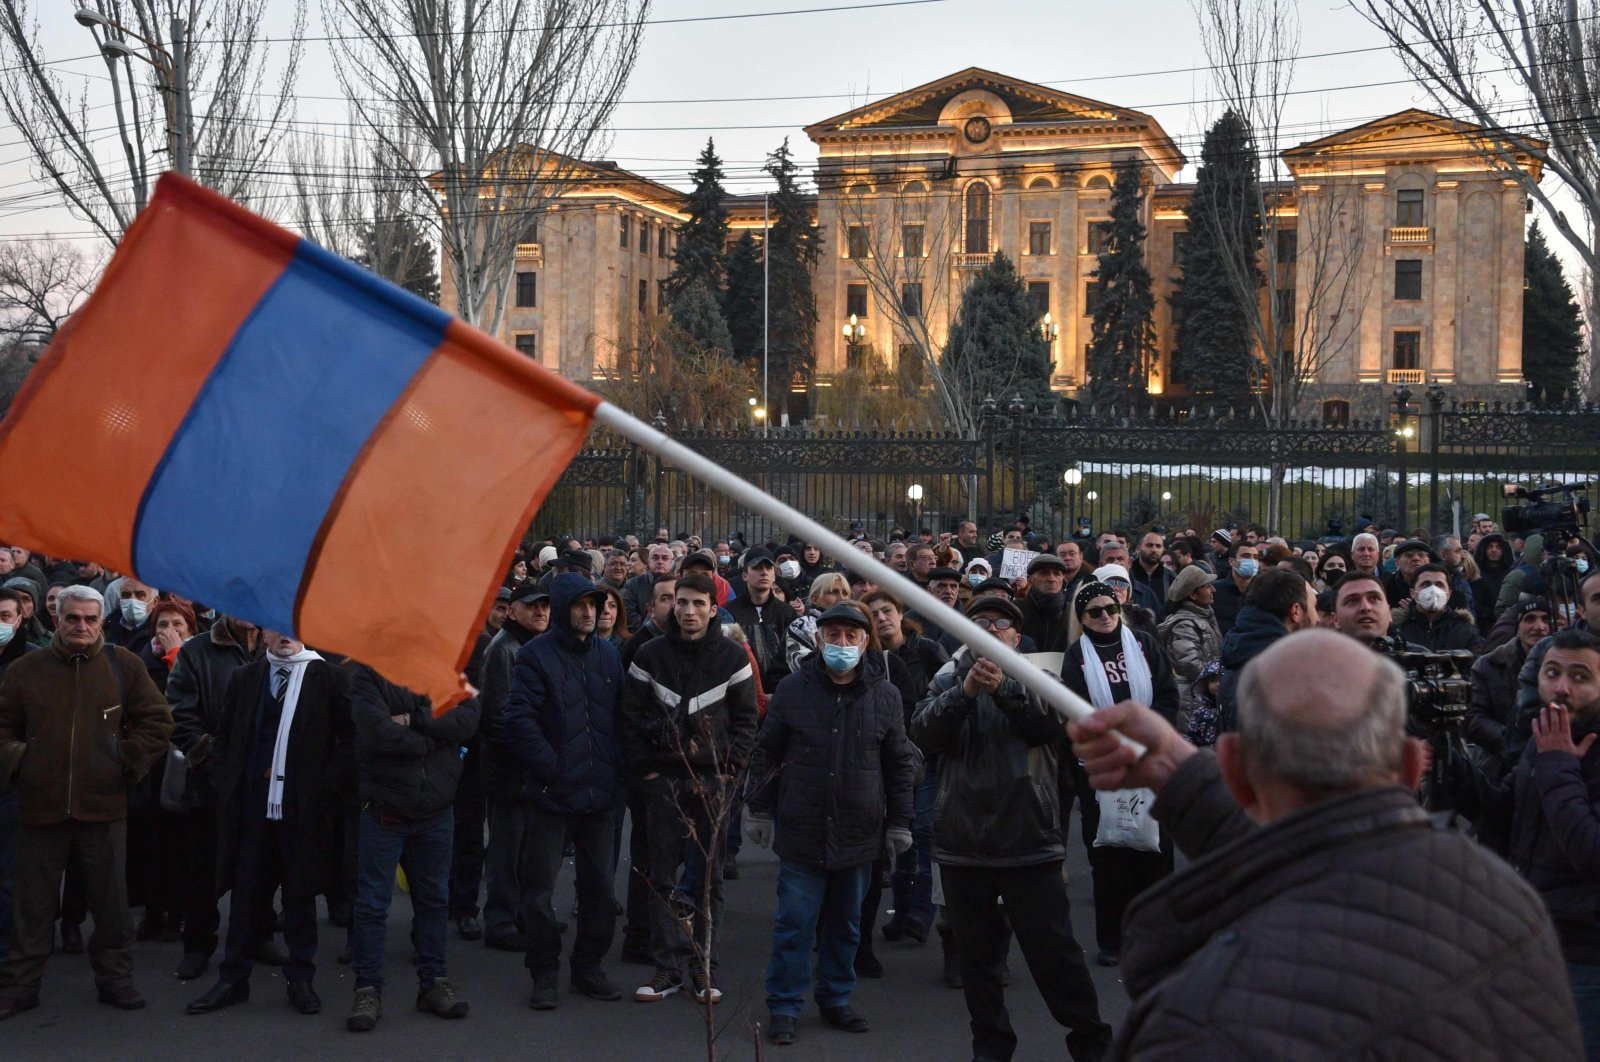 Opposition supporters rally outside the National Assembly building to demand Prime Minister Nikol Pashinian's resignation over his handling of last year's war with Azerbaijan, in Yerevan on Feb. 26, 2021. (AFP Photo)